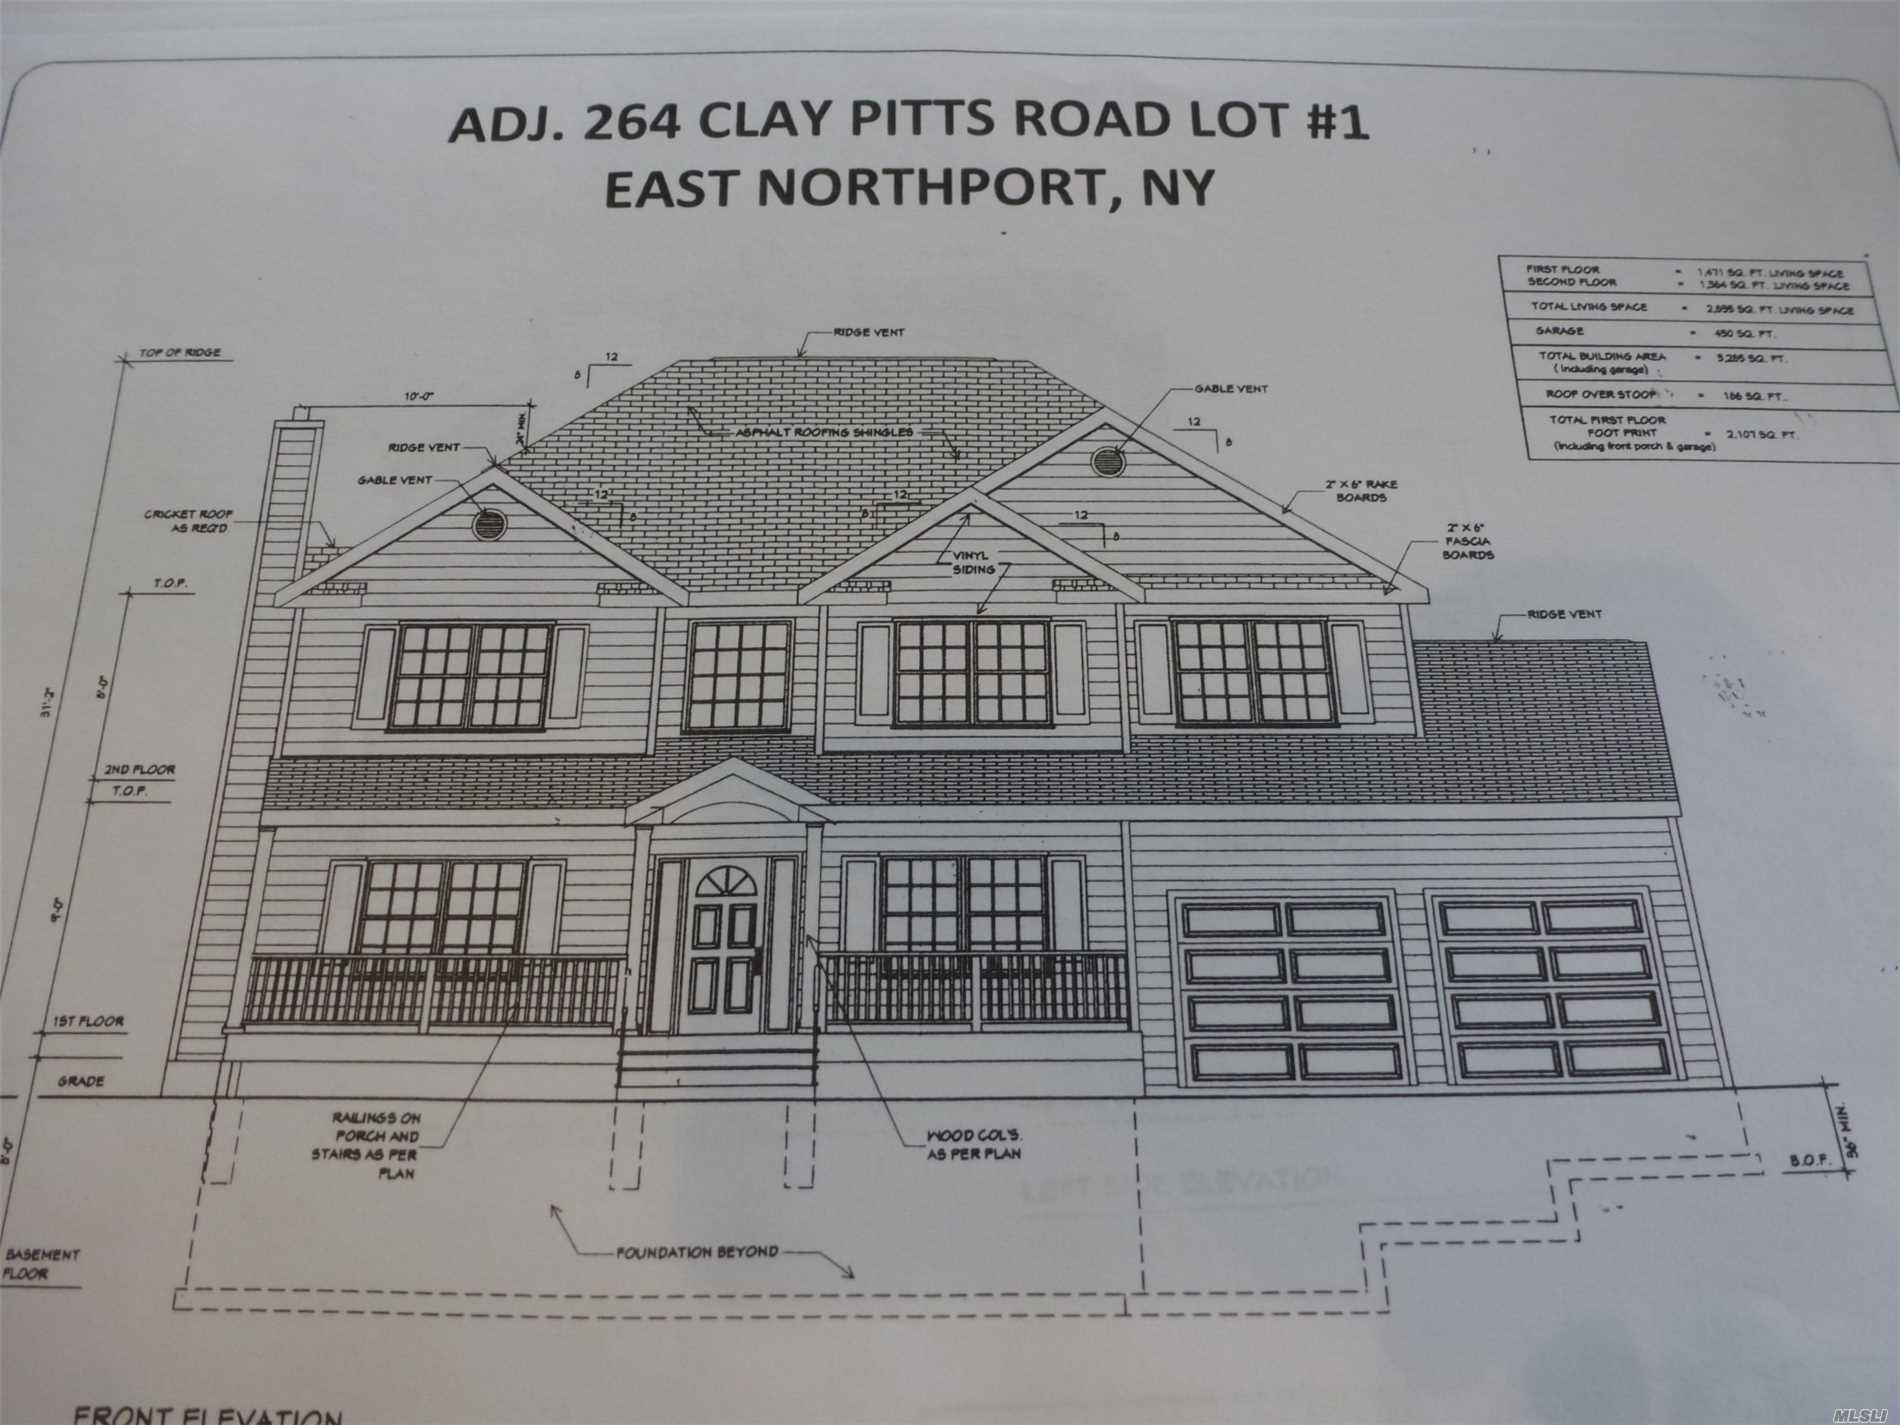 Adj264 Lt1 Clay Pitts Rd - E. Northport, New York